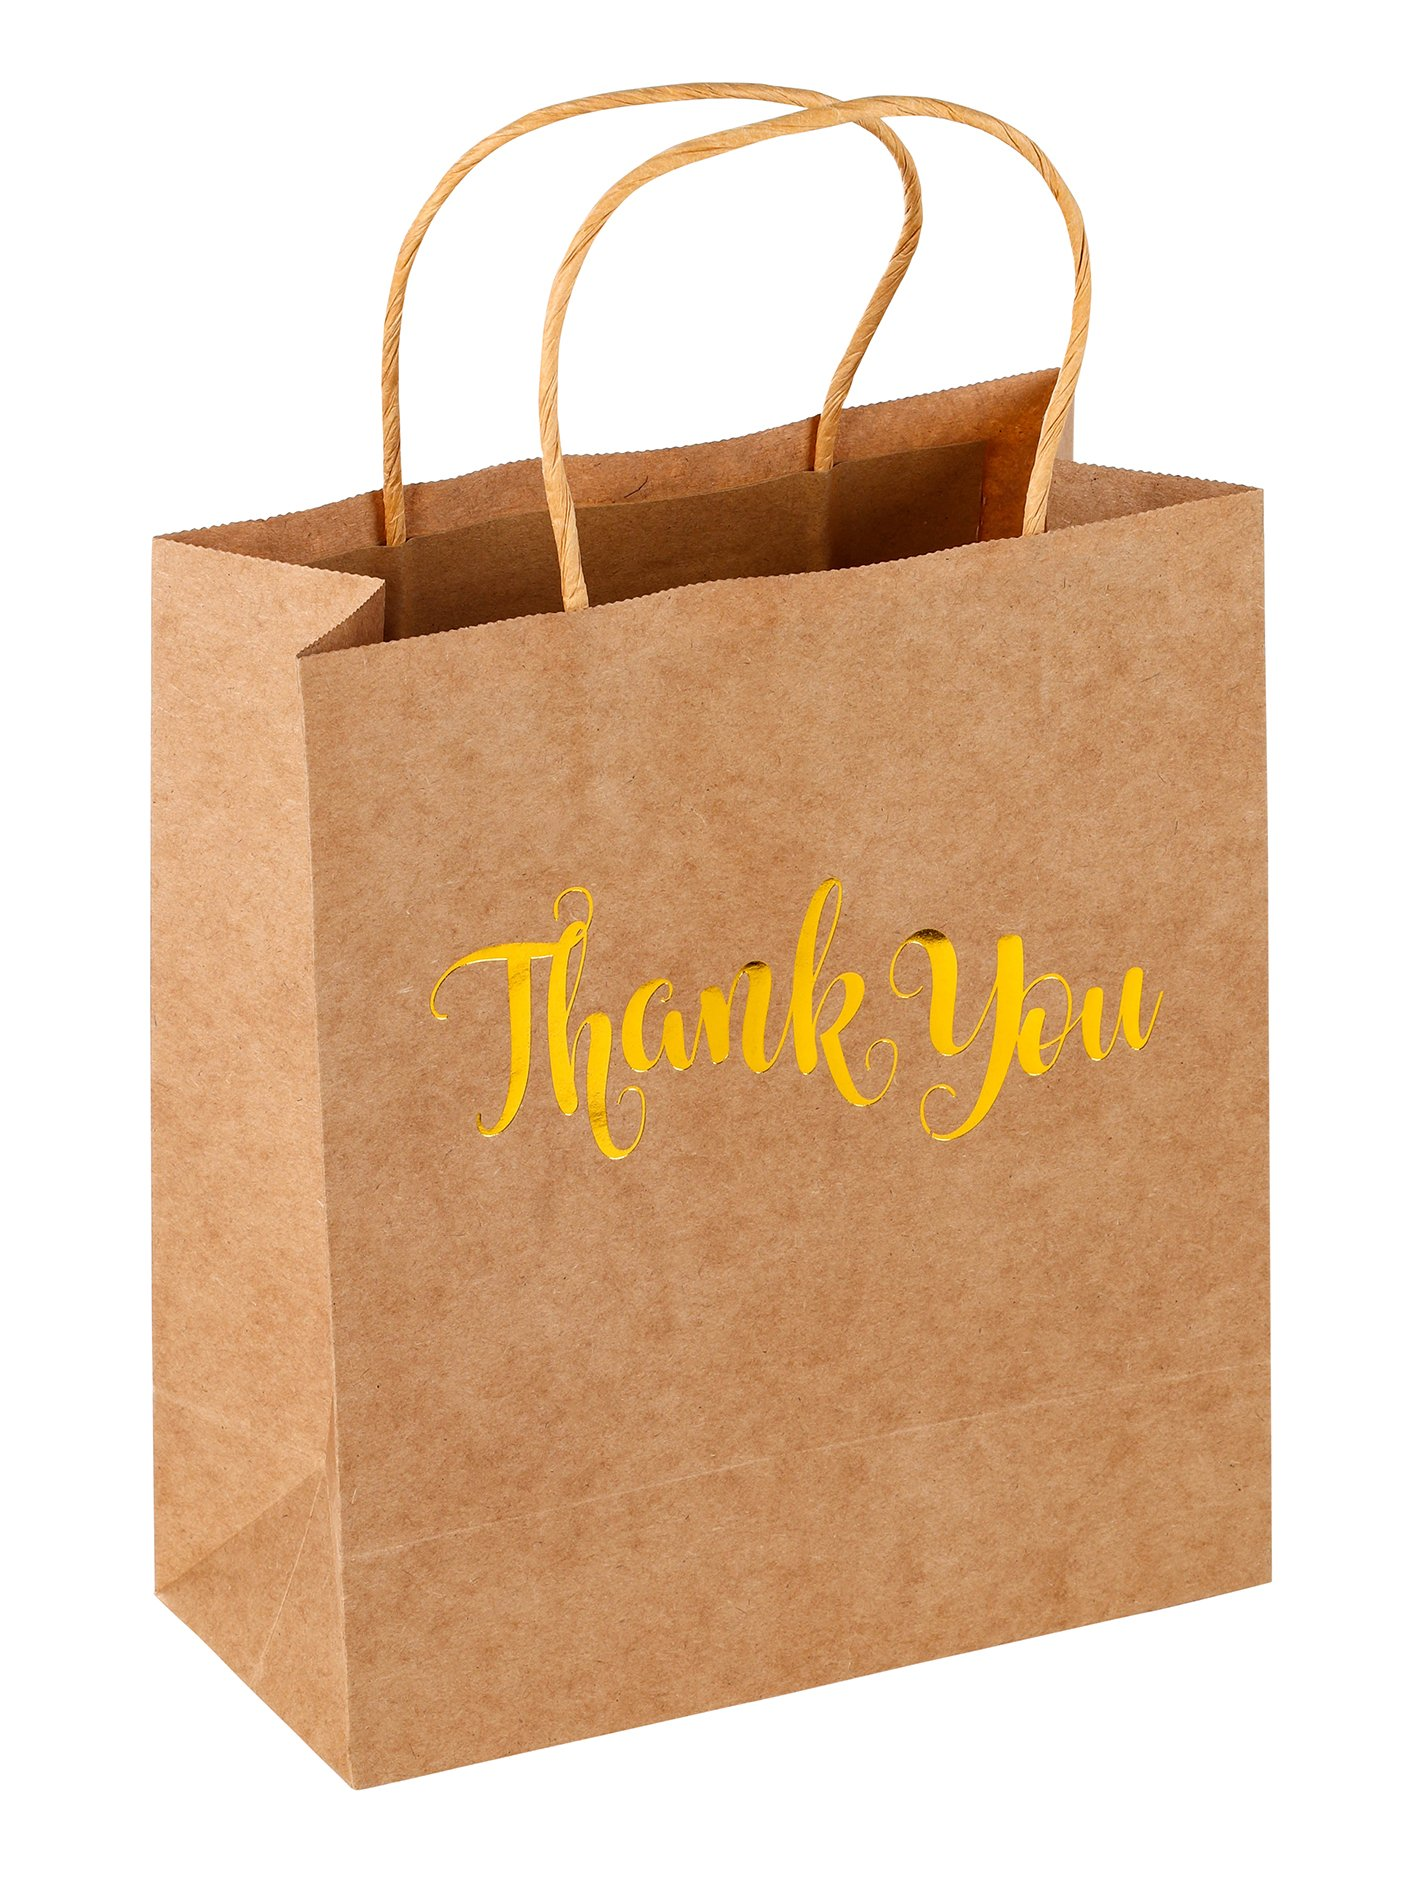 Thank You Gift Bag - 15-Pack Gold Foil Brown Kraft Paper Bag Party Favors Includes Tissue Paper for Birthday, Baby Shower, Wedding Party Guests, 8 x 4 x 9 inches